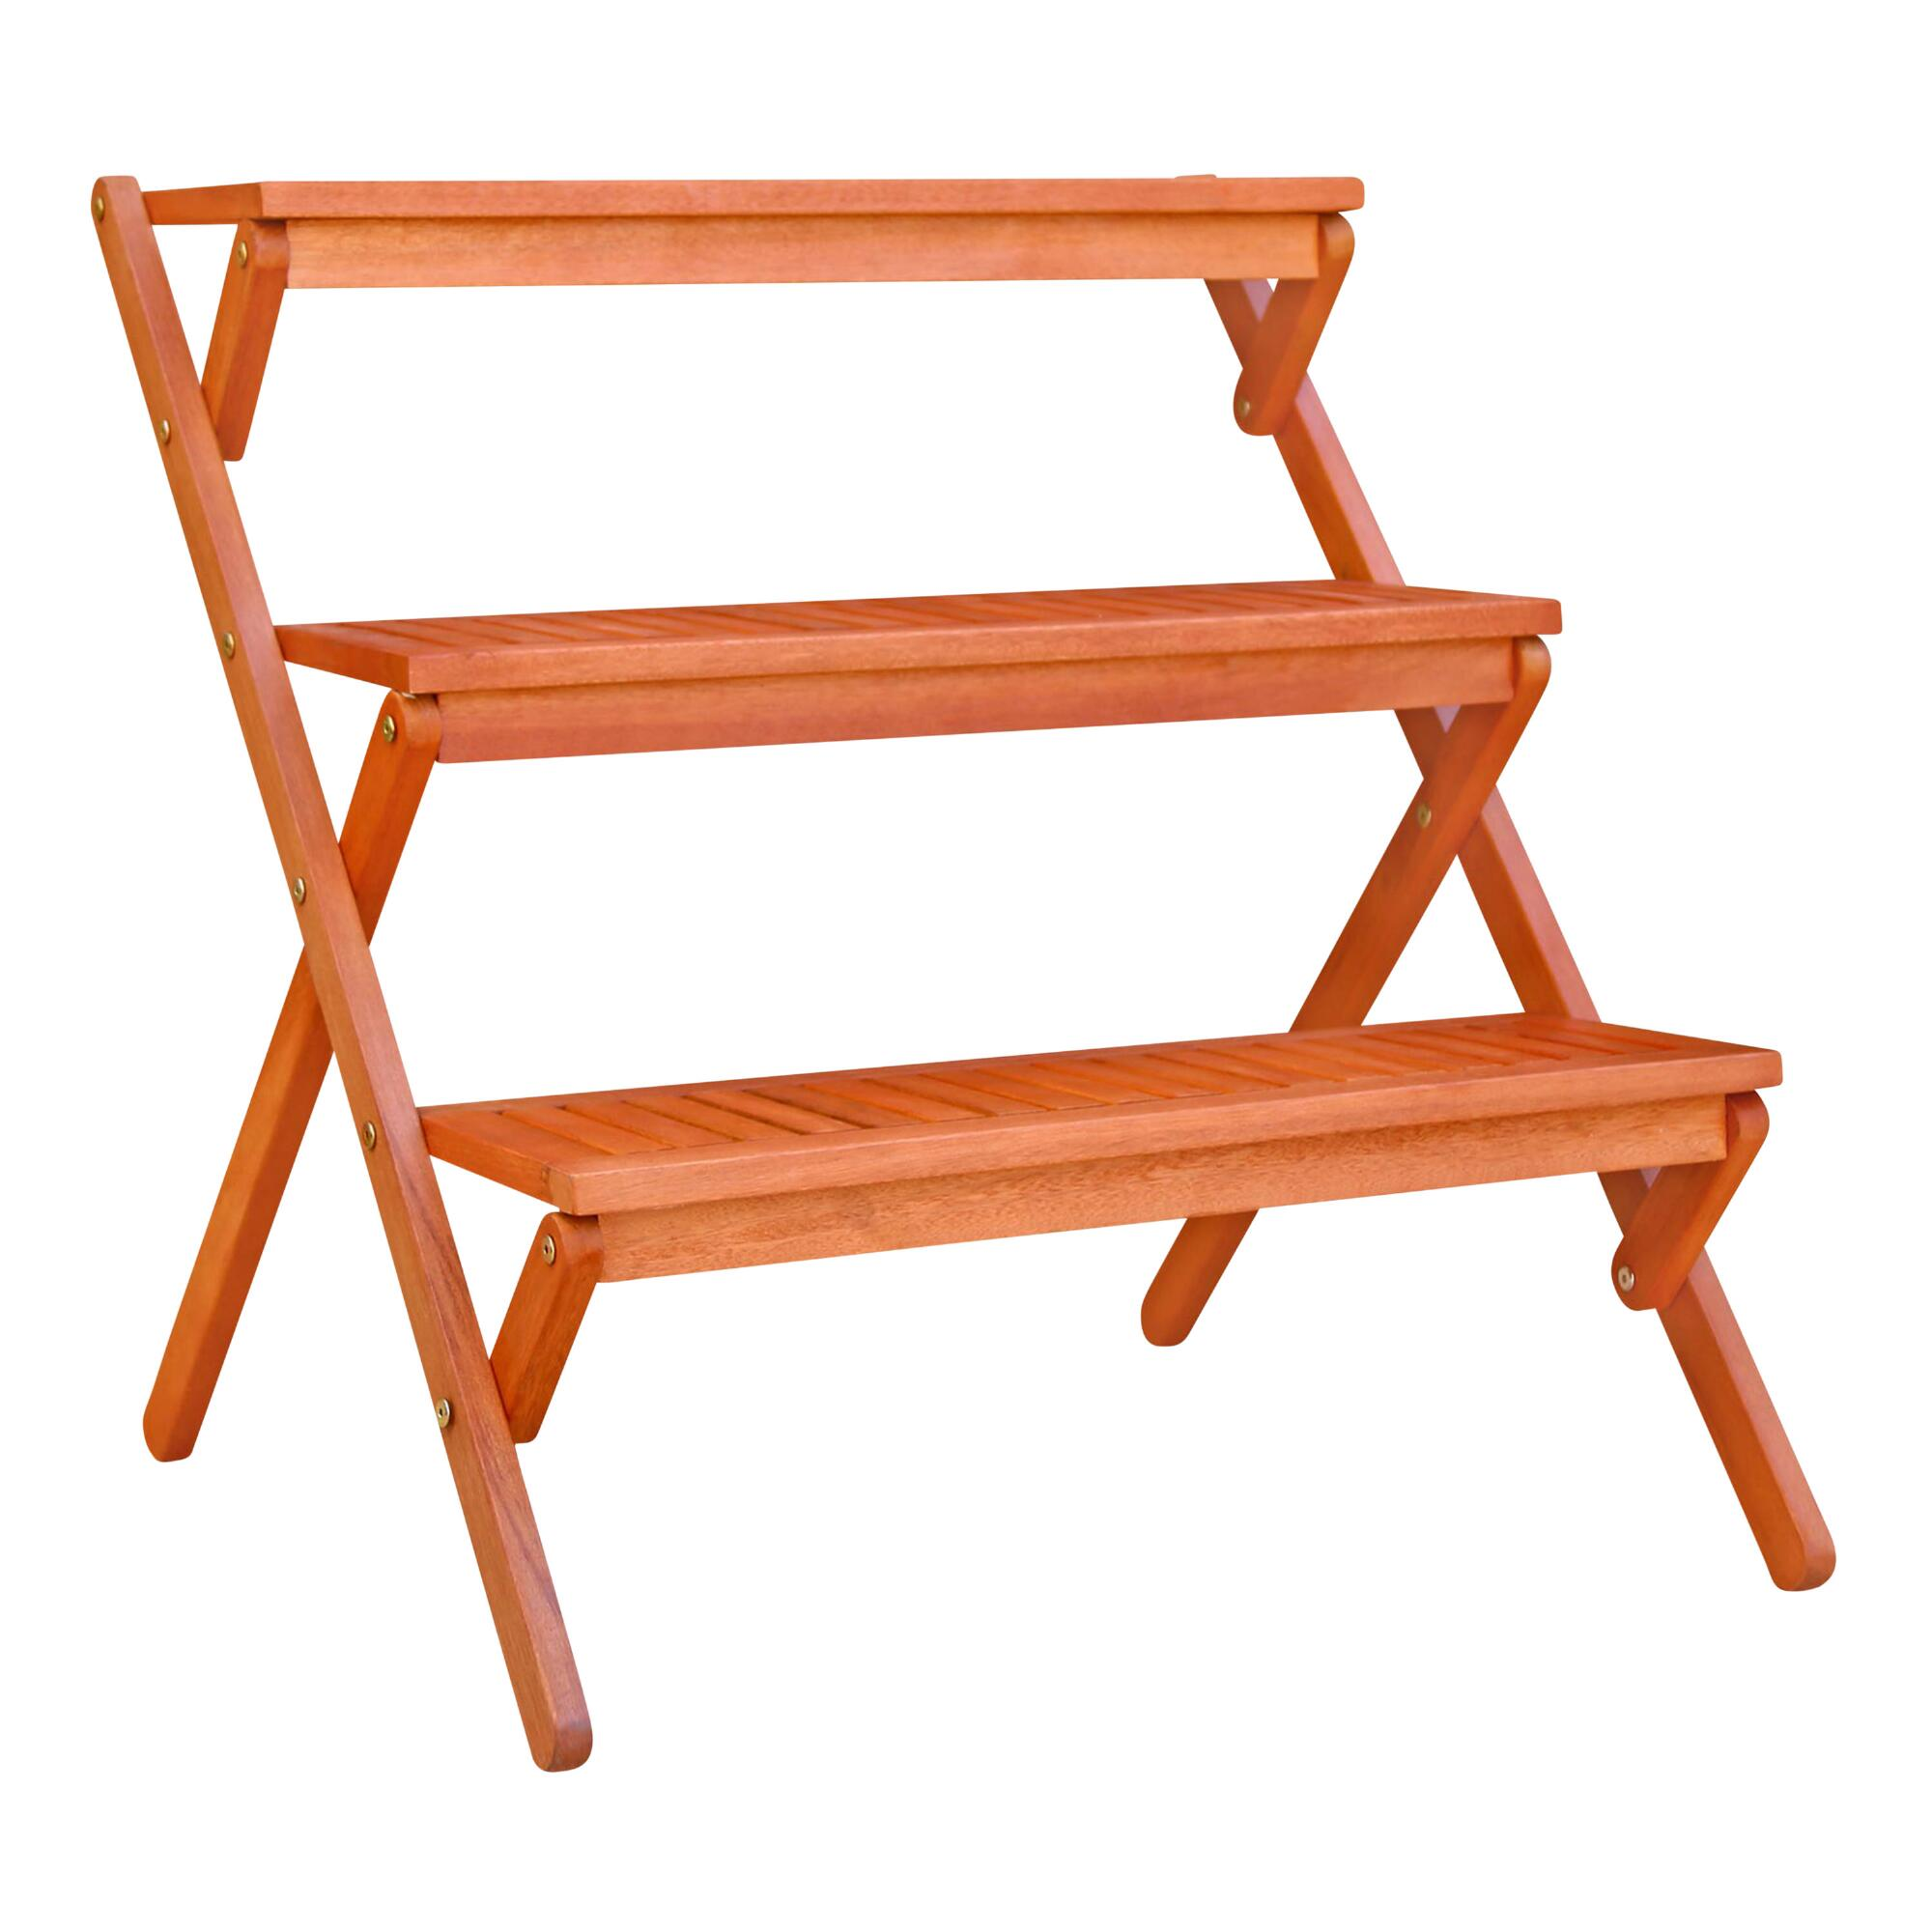 Tiered plant stand world market - Tier plant stand outdoor ...